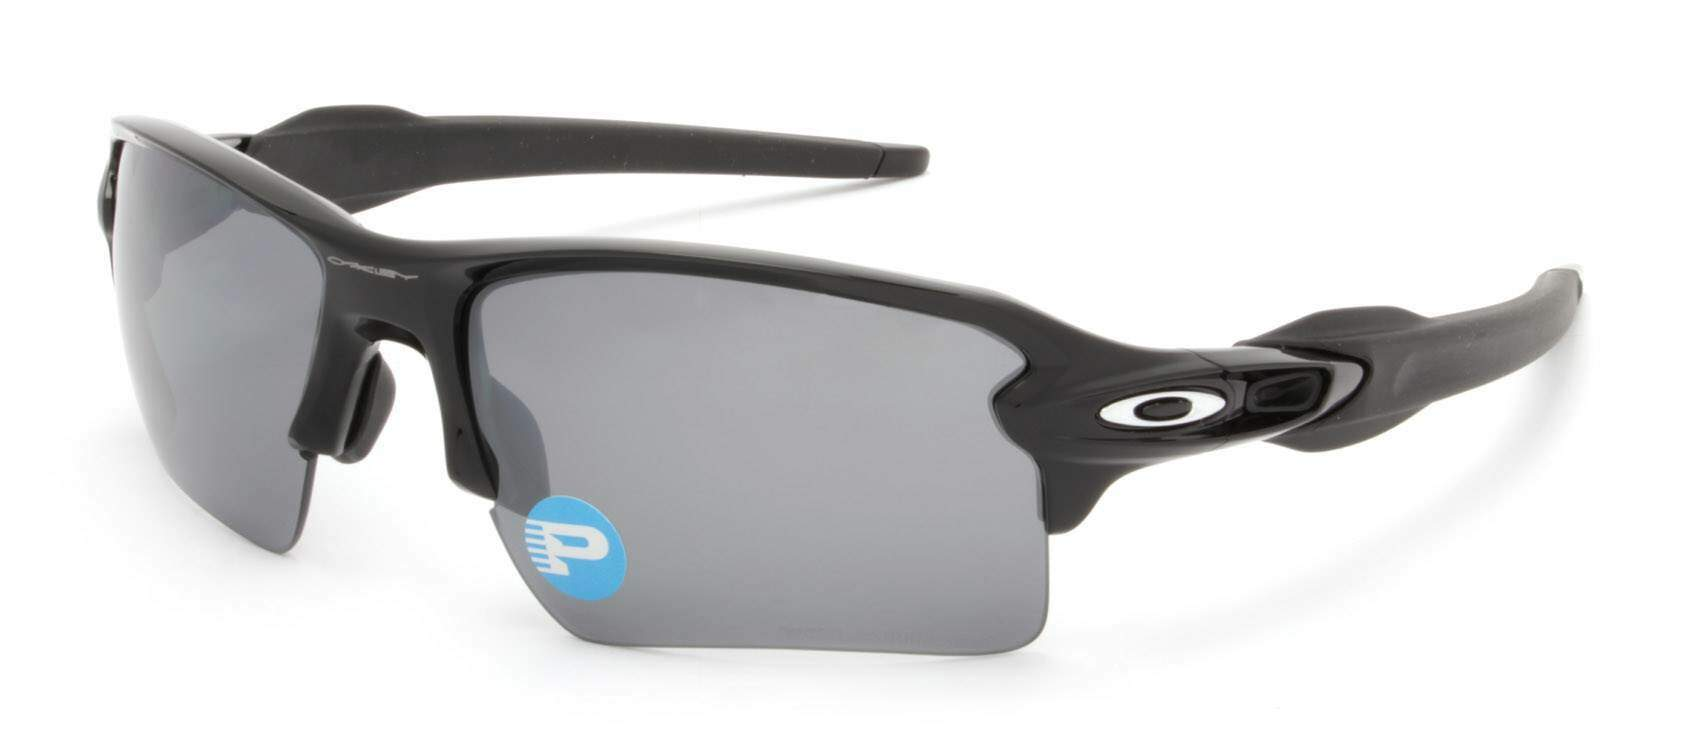 Flak 2.0 XL Polished Black / Black Iridium Polarized OO9188-08